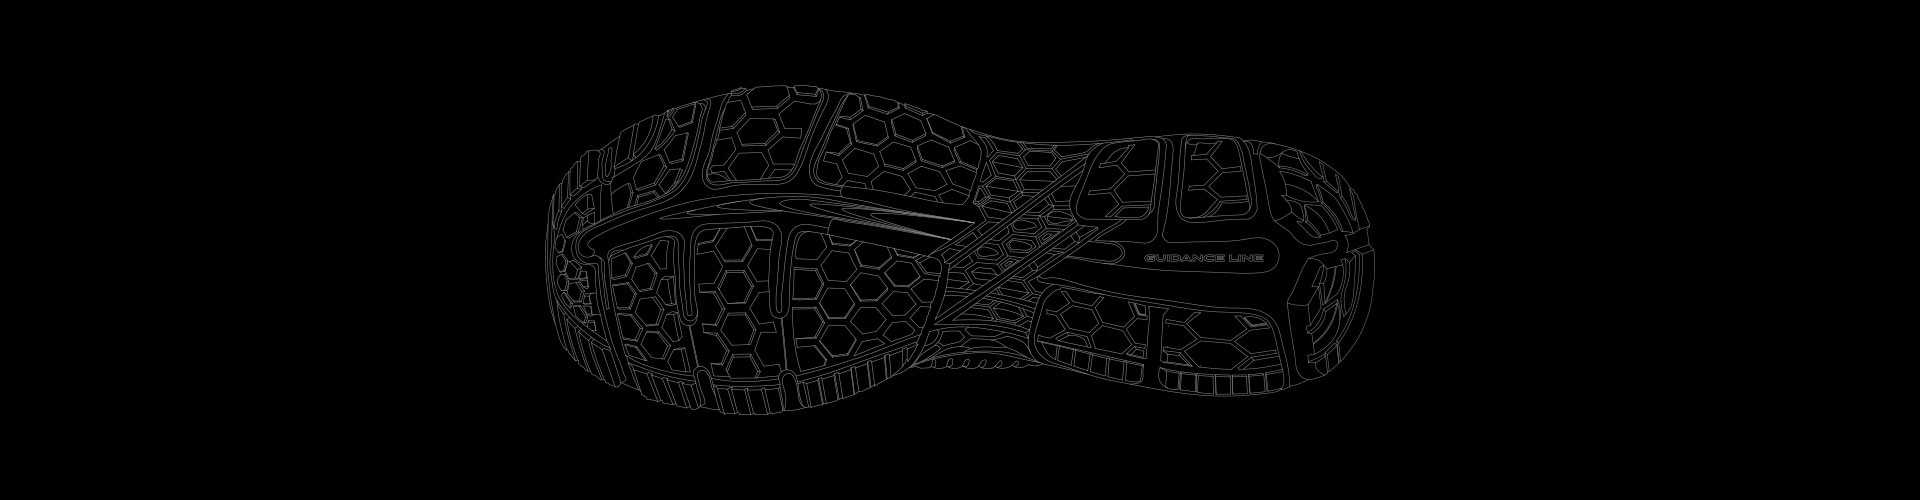 Introducing the ASICS Blackout Track